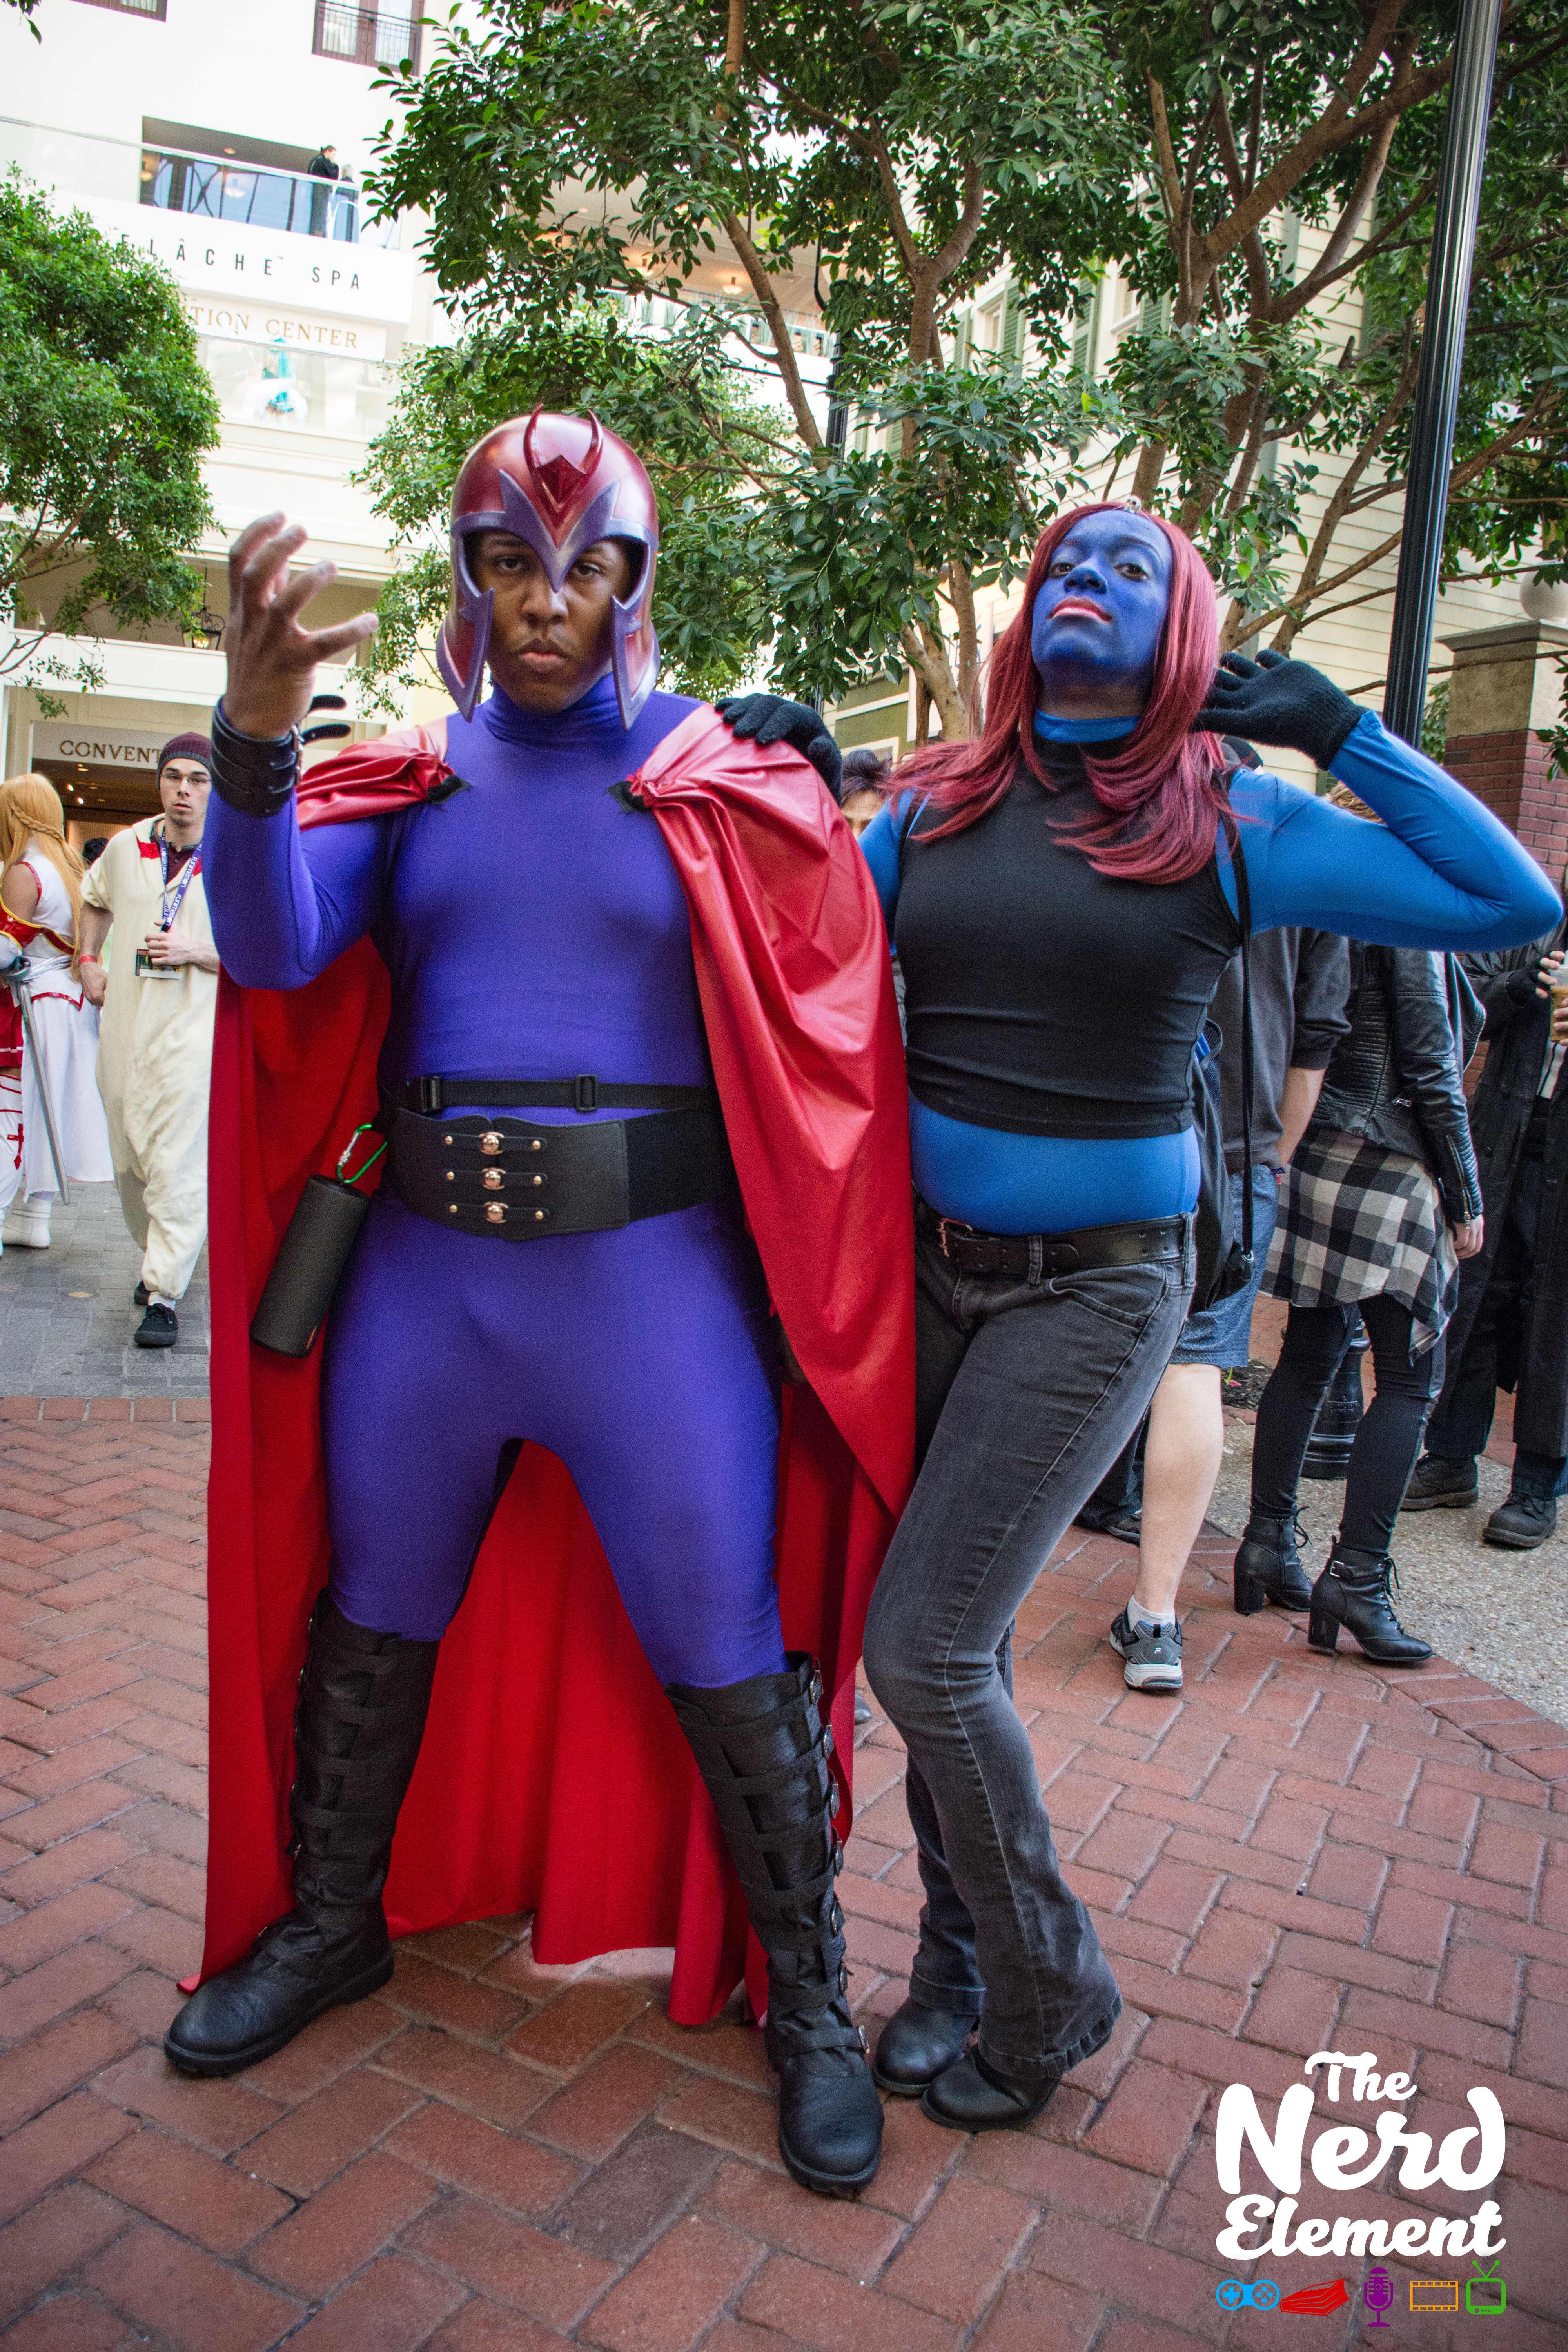 Magneto and Mystique Cosplayers: @dgcollins28 and @mikettedw